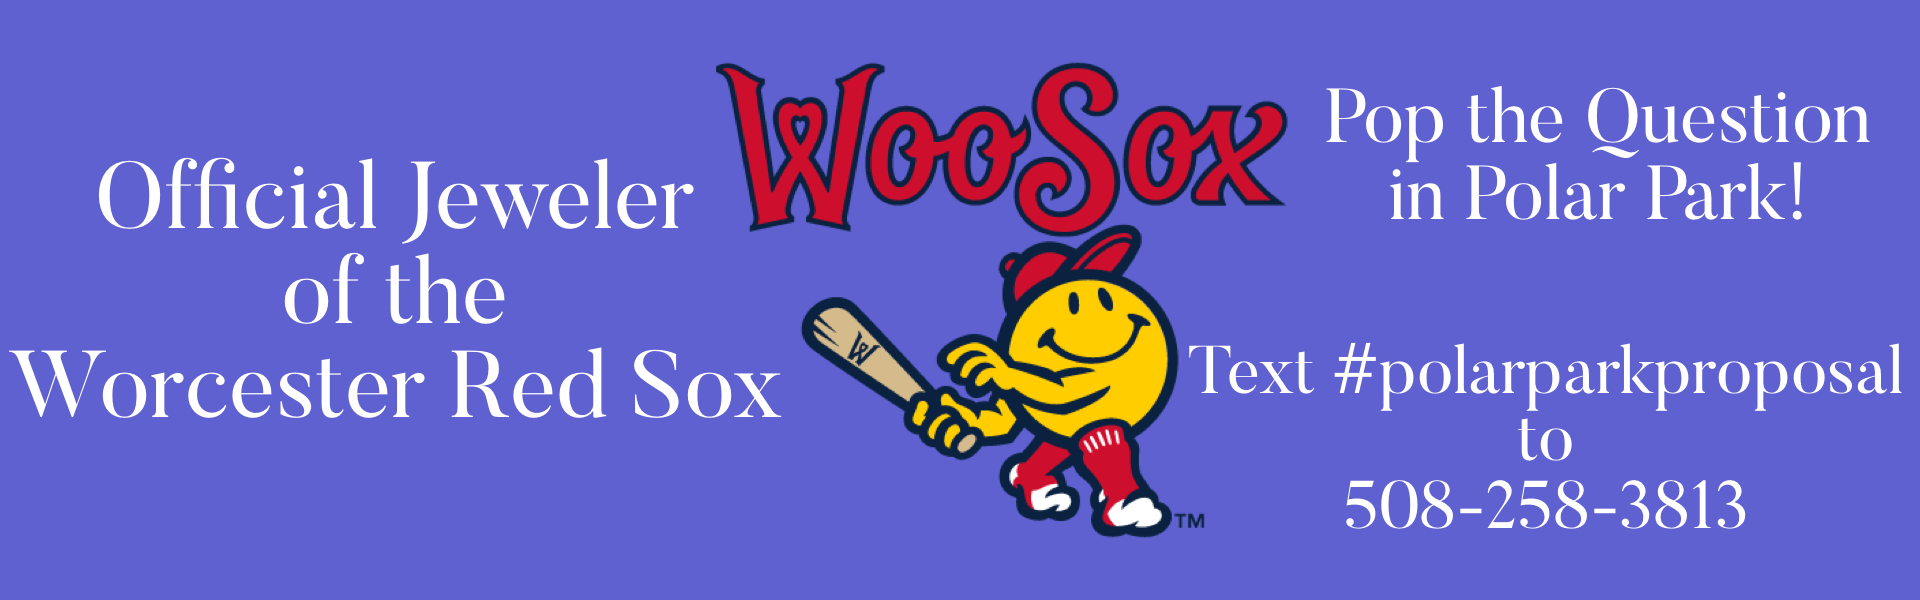 Offical Jeweler of the WooSox